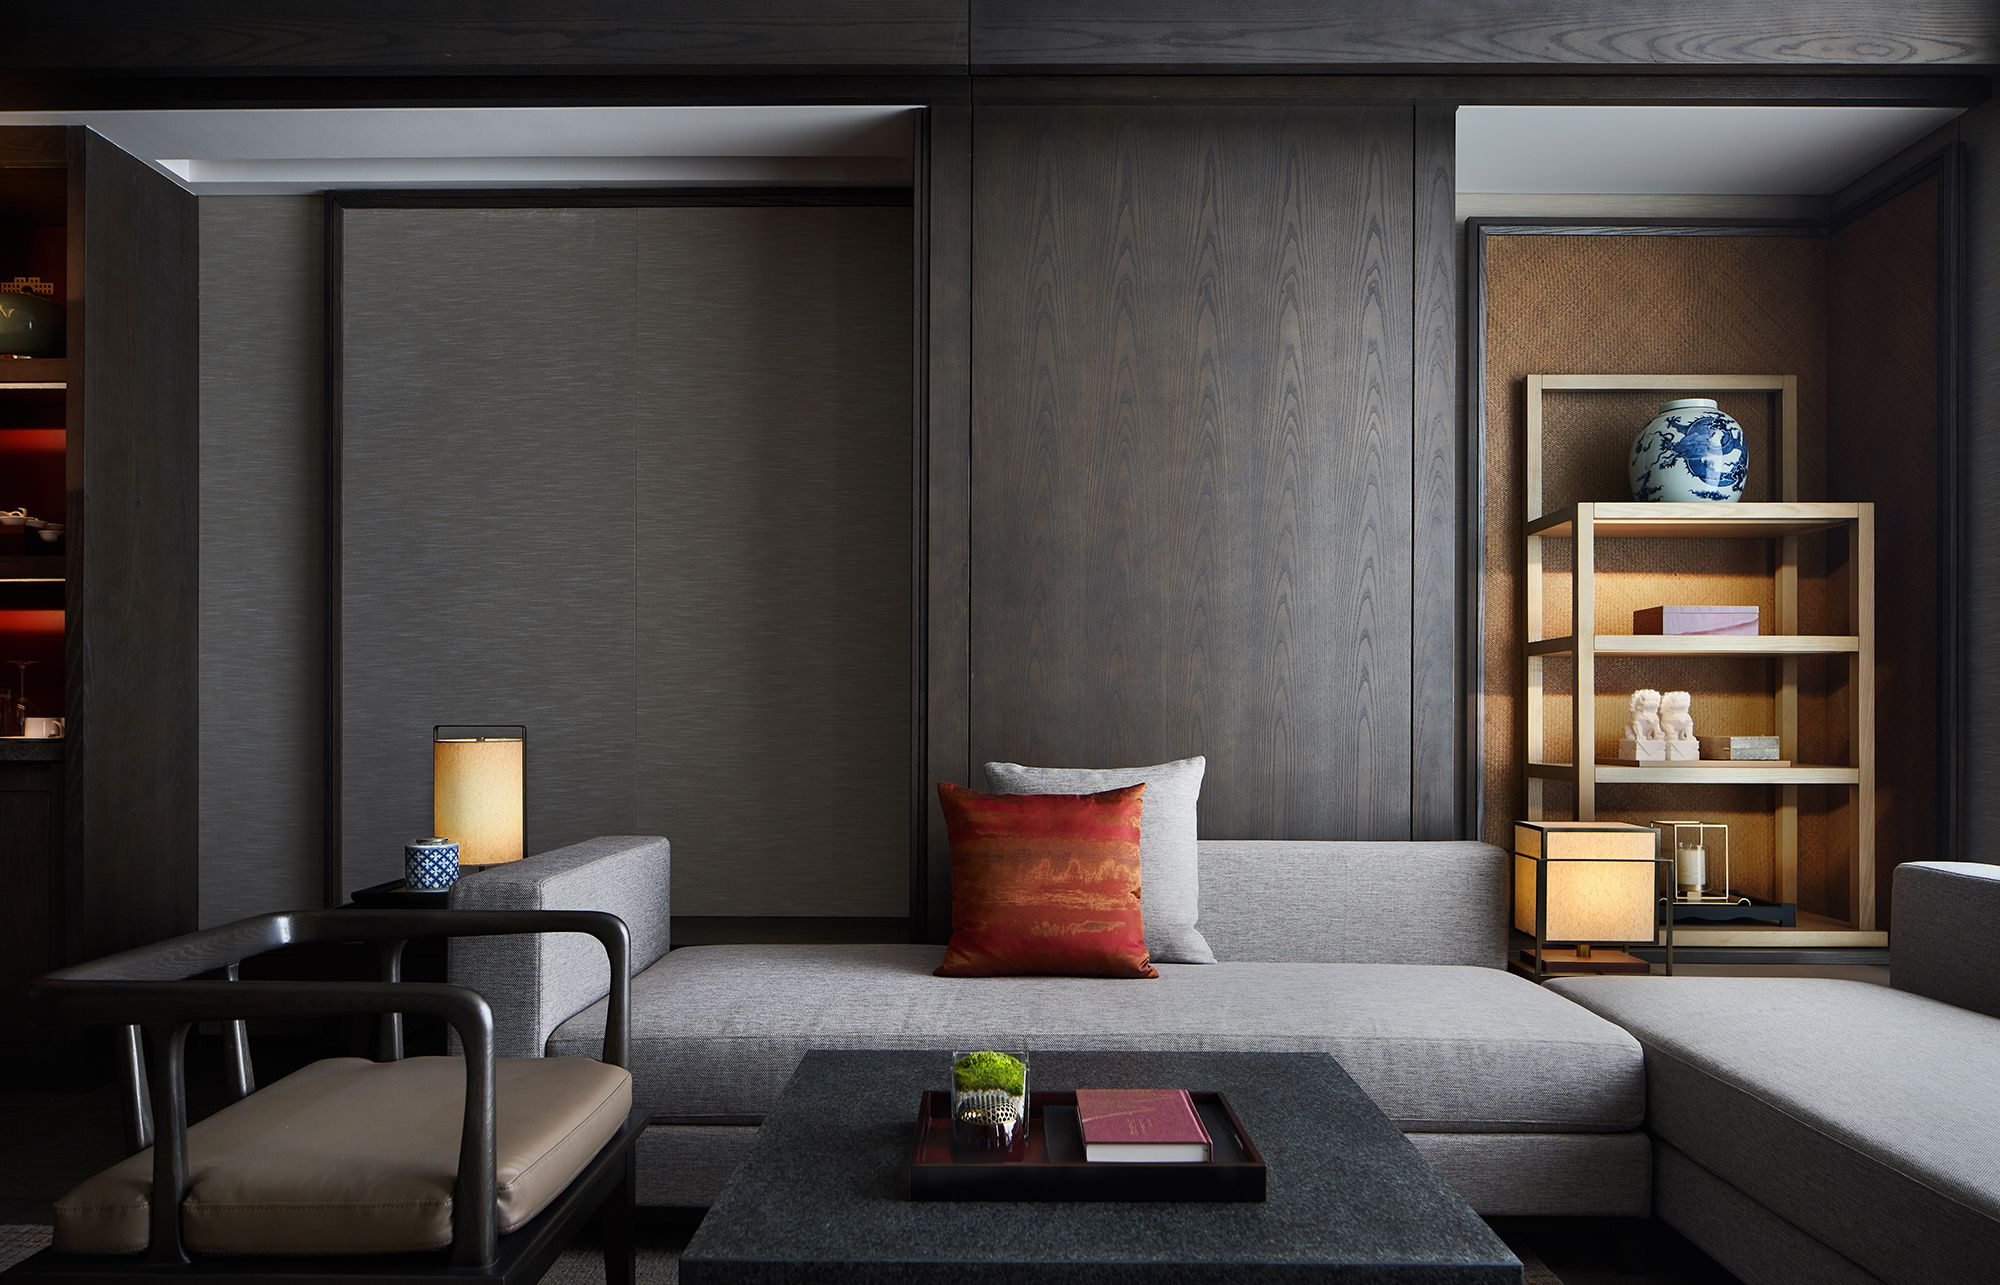 Hualuxe Xi An Hi Tech Zone Picture Gallery In 2020 Hotel Interiors Chinese Style Interior Interior Design Living Room